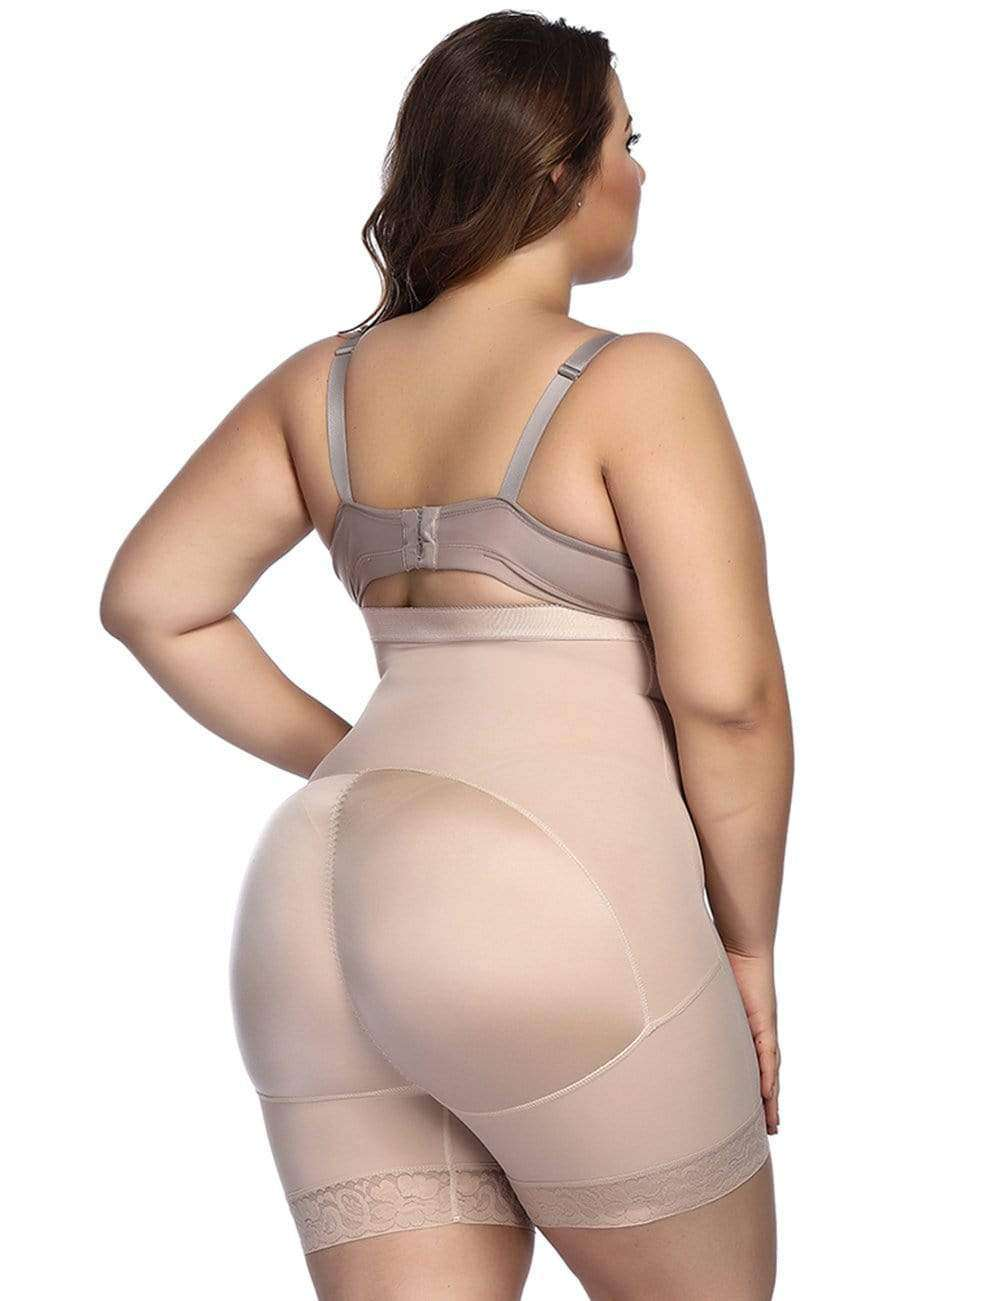 Nude Anti-Curl Butt Enhancer Posture Corrector Shapewear